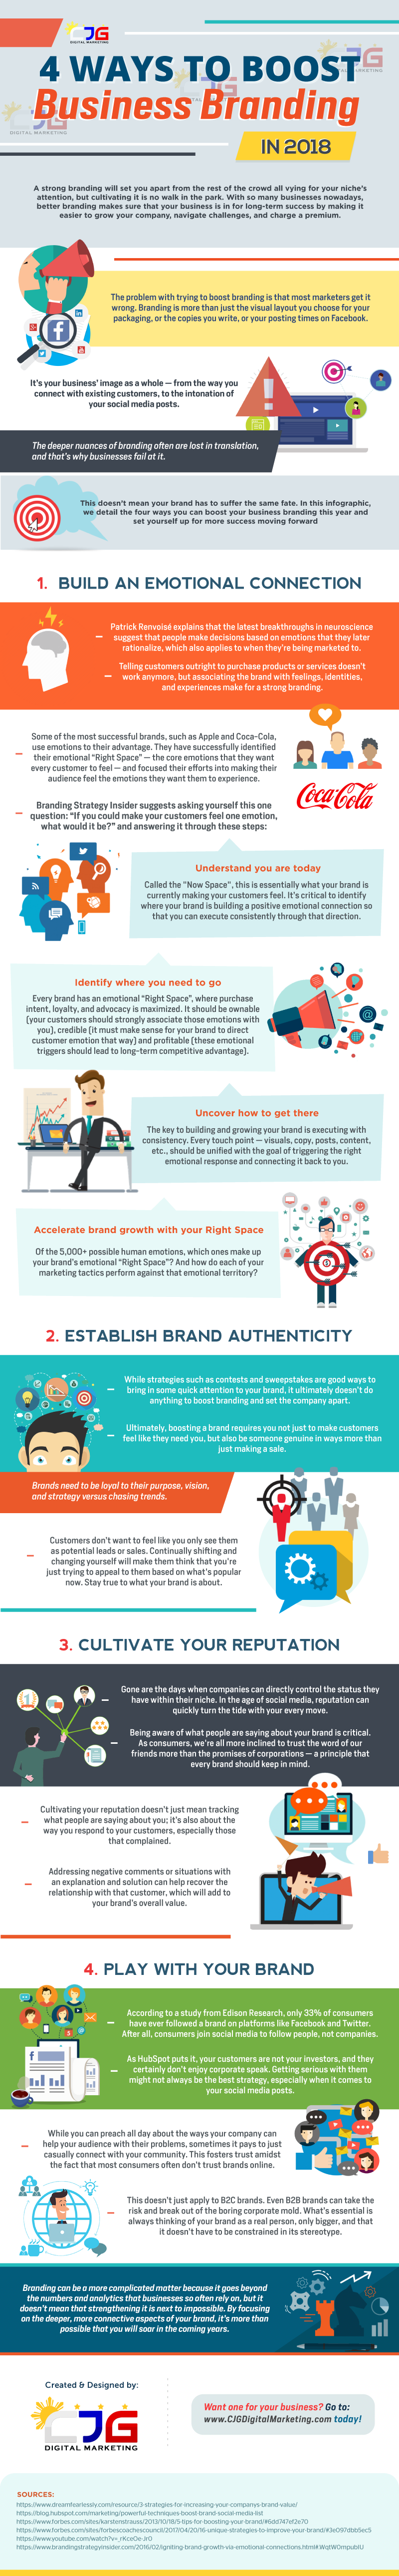 4 Ways to Boost Business Branding in 2018